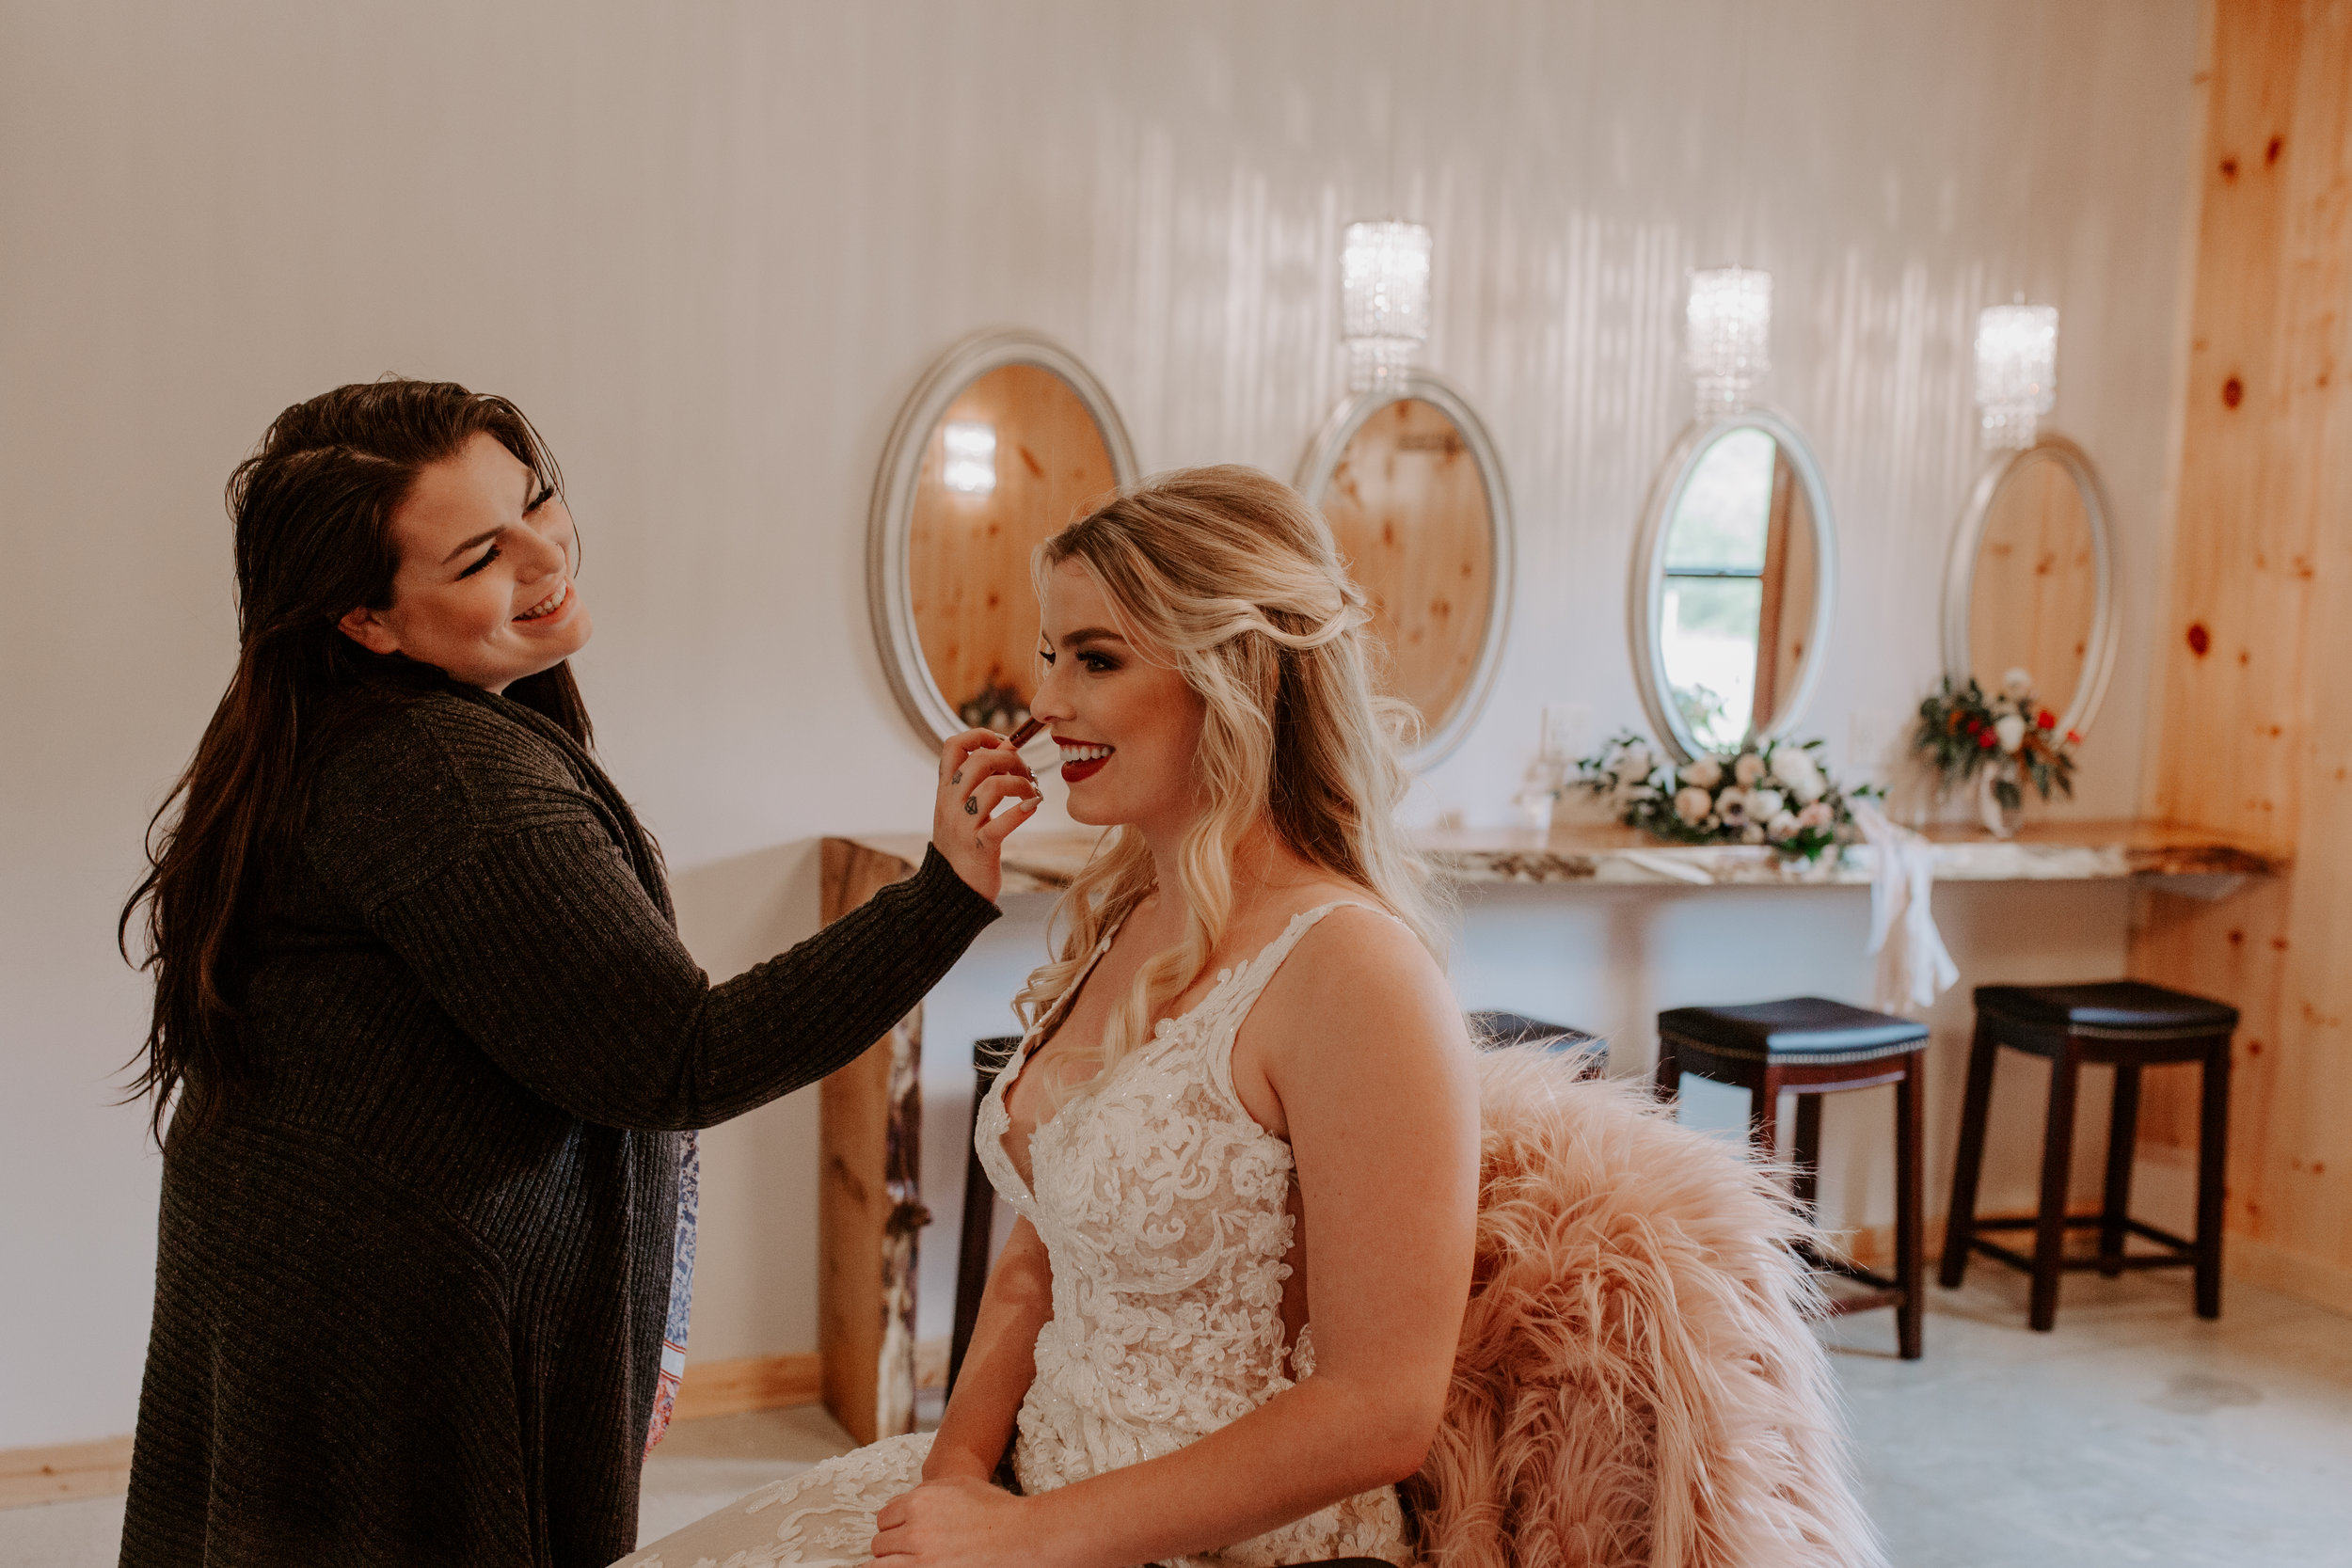 Bride getting her hair and makeup done in bride room at Country Lane Lodge in Iowa, smiling and having blush applied by makeup artist